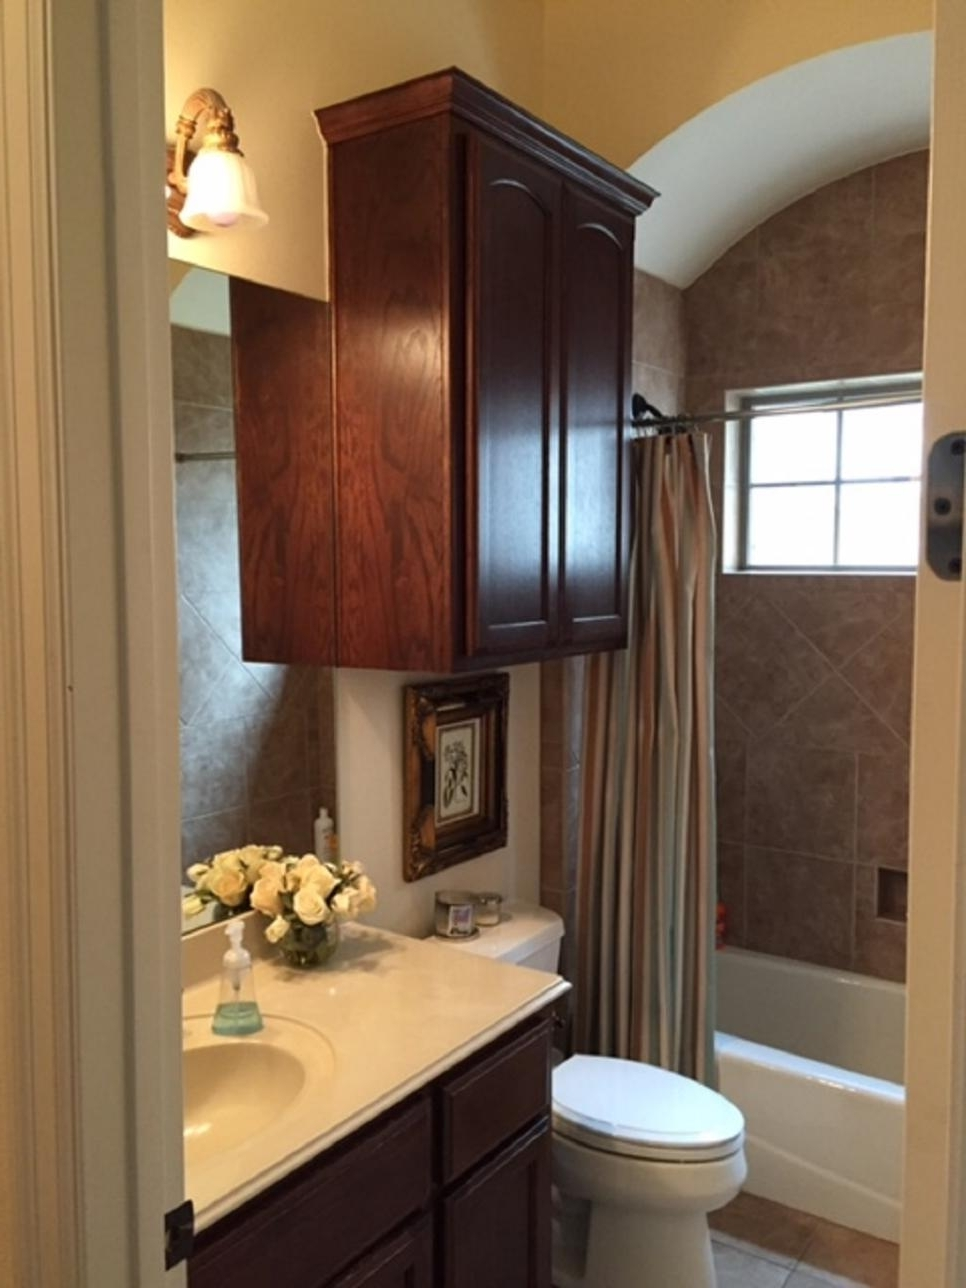 Before And After Bathroom Remodels On A Budget | Hgtv Within Bathroom Remodel (Image 16 of 33)